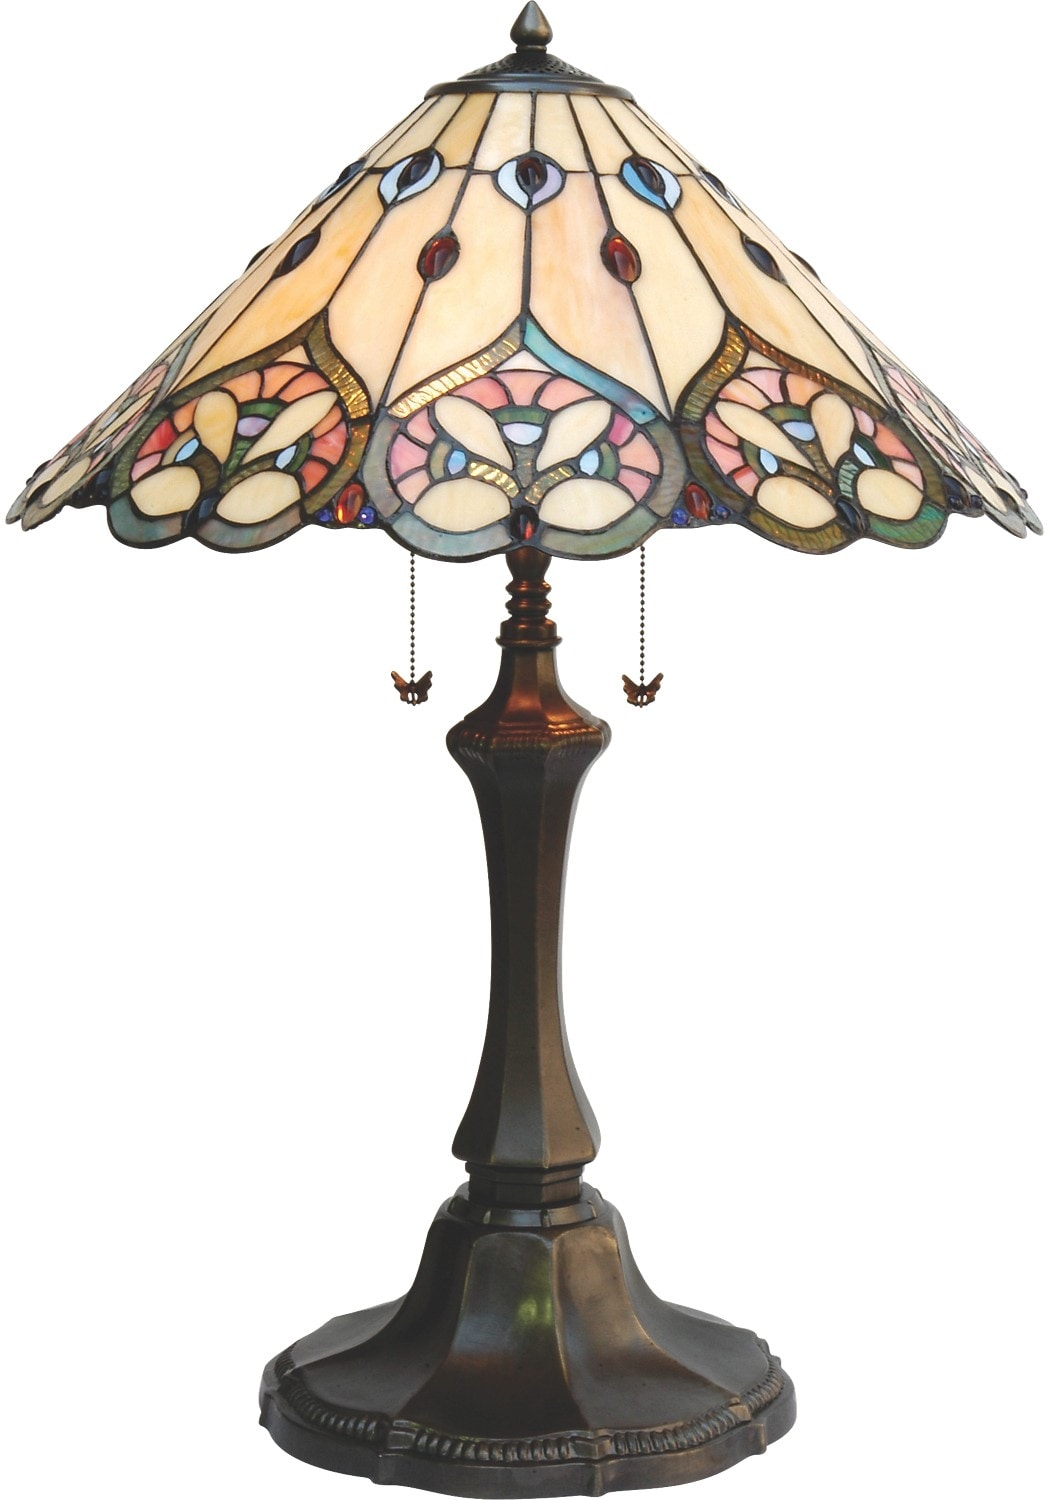 Cairo Tiffany-Style Table Lamp with Stained Glass Shade